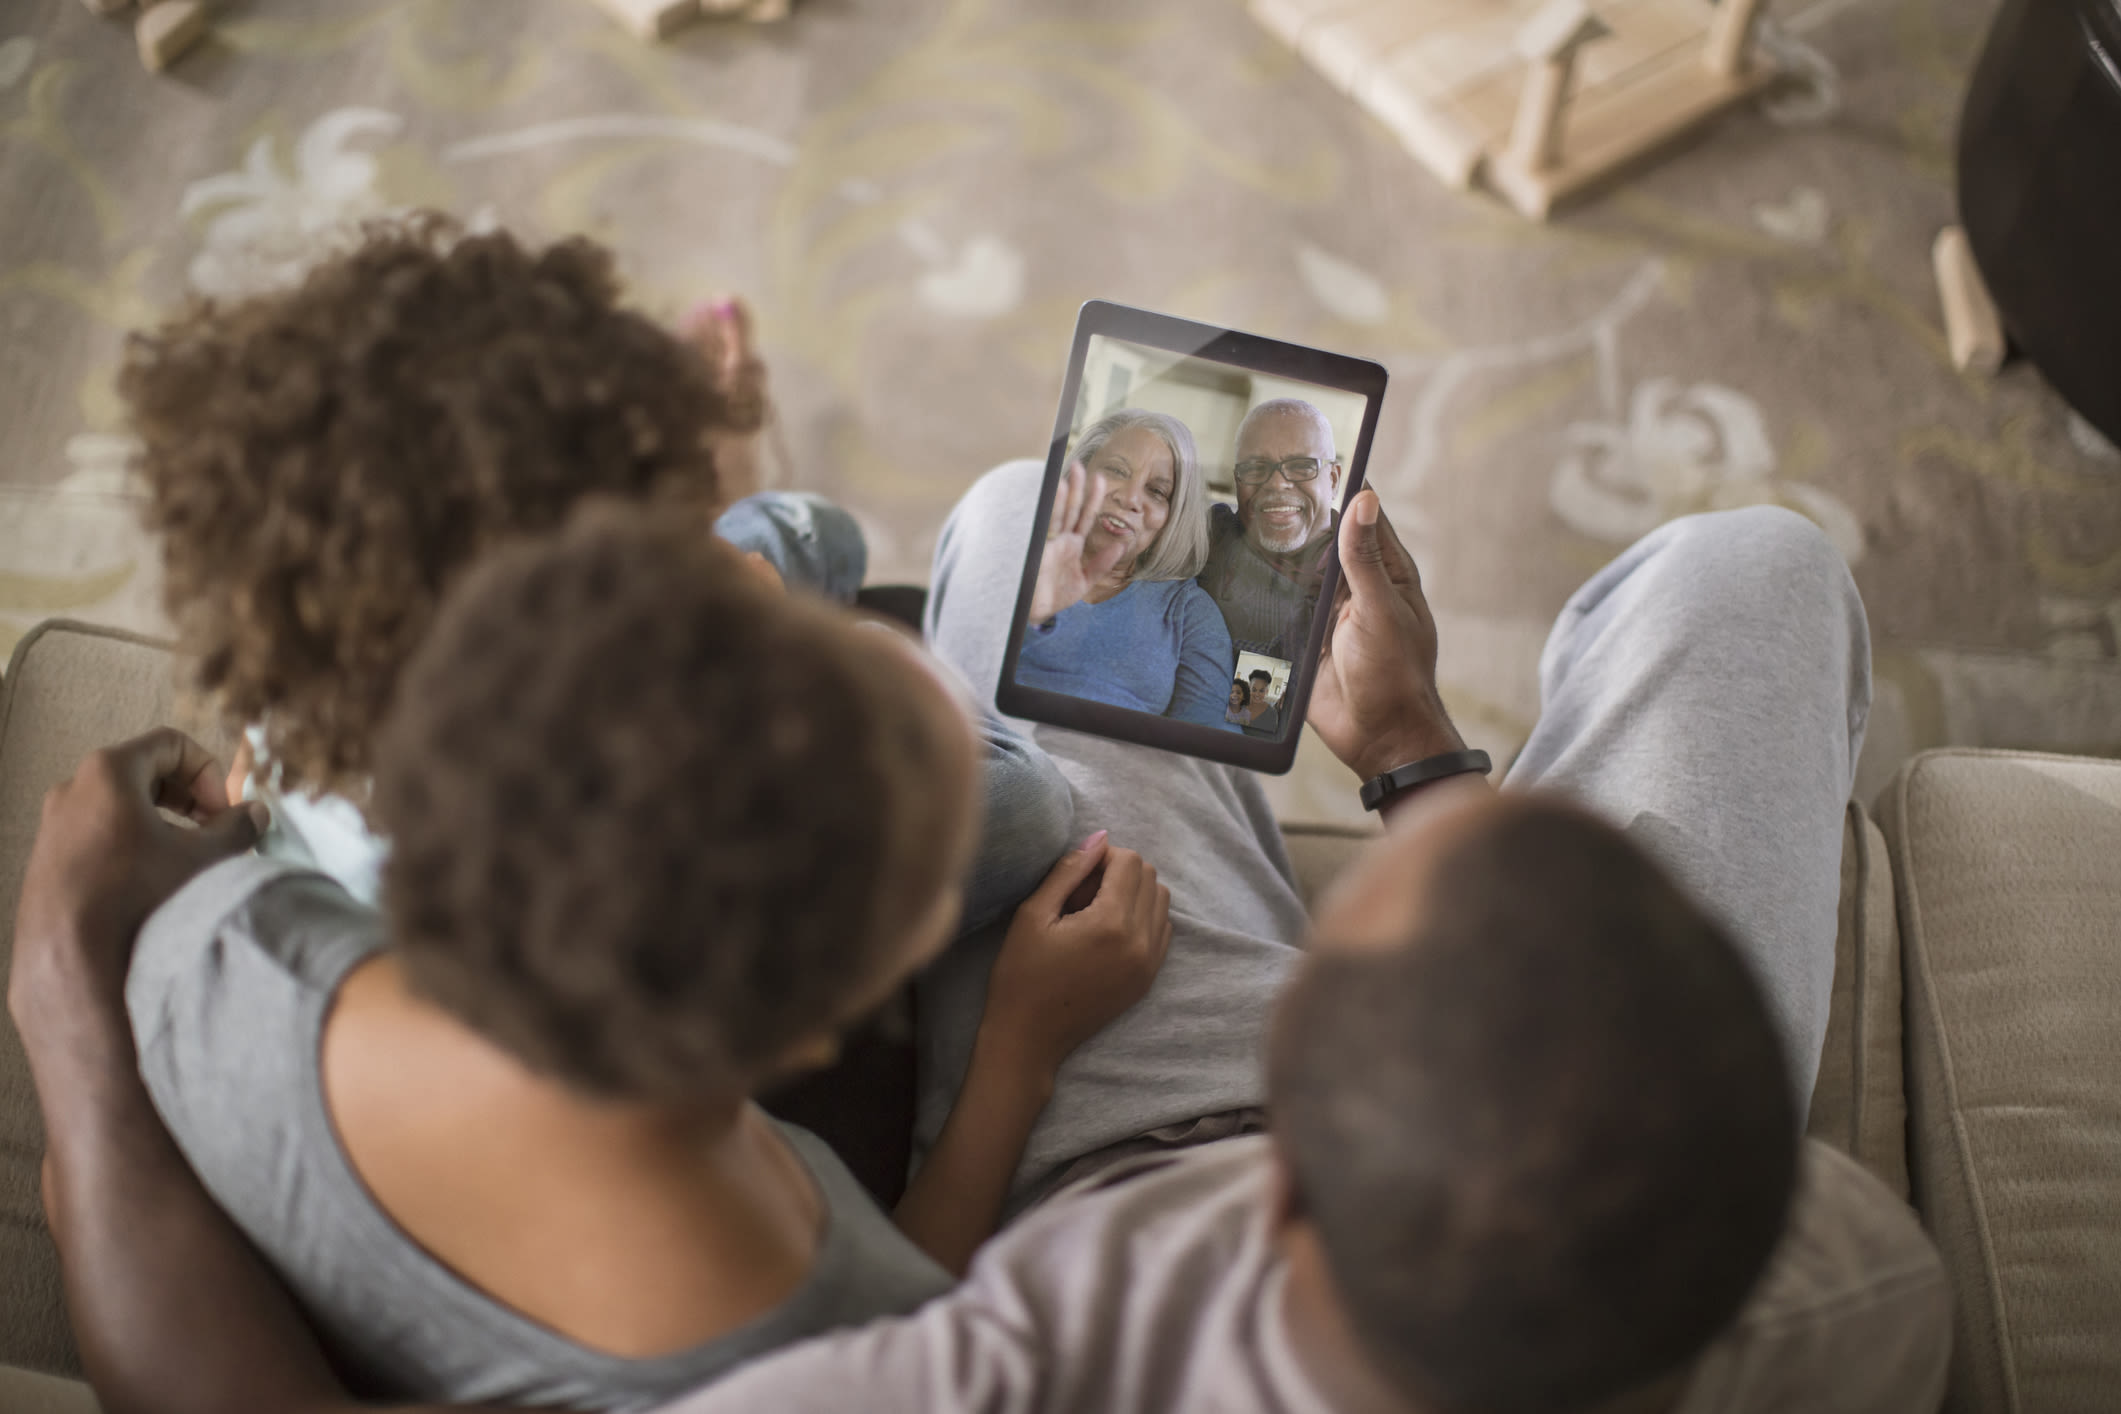 A family video chatting on a tablet